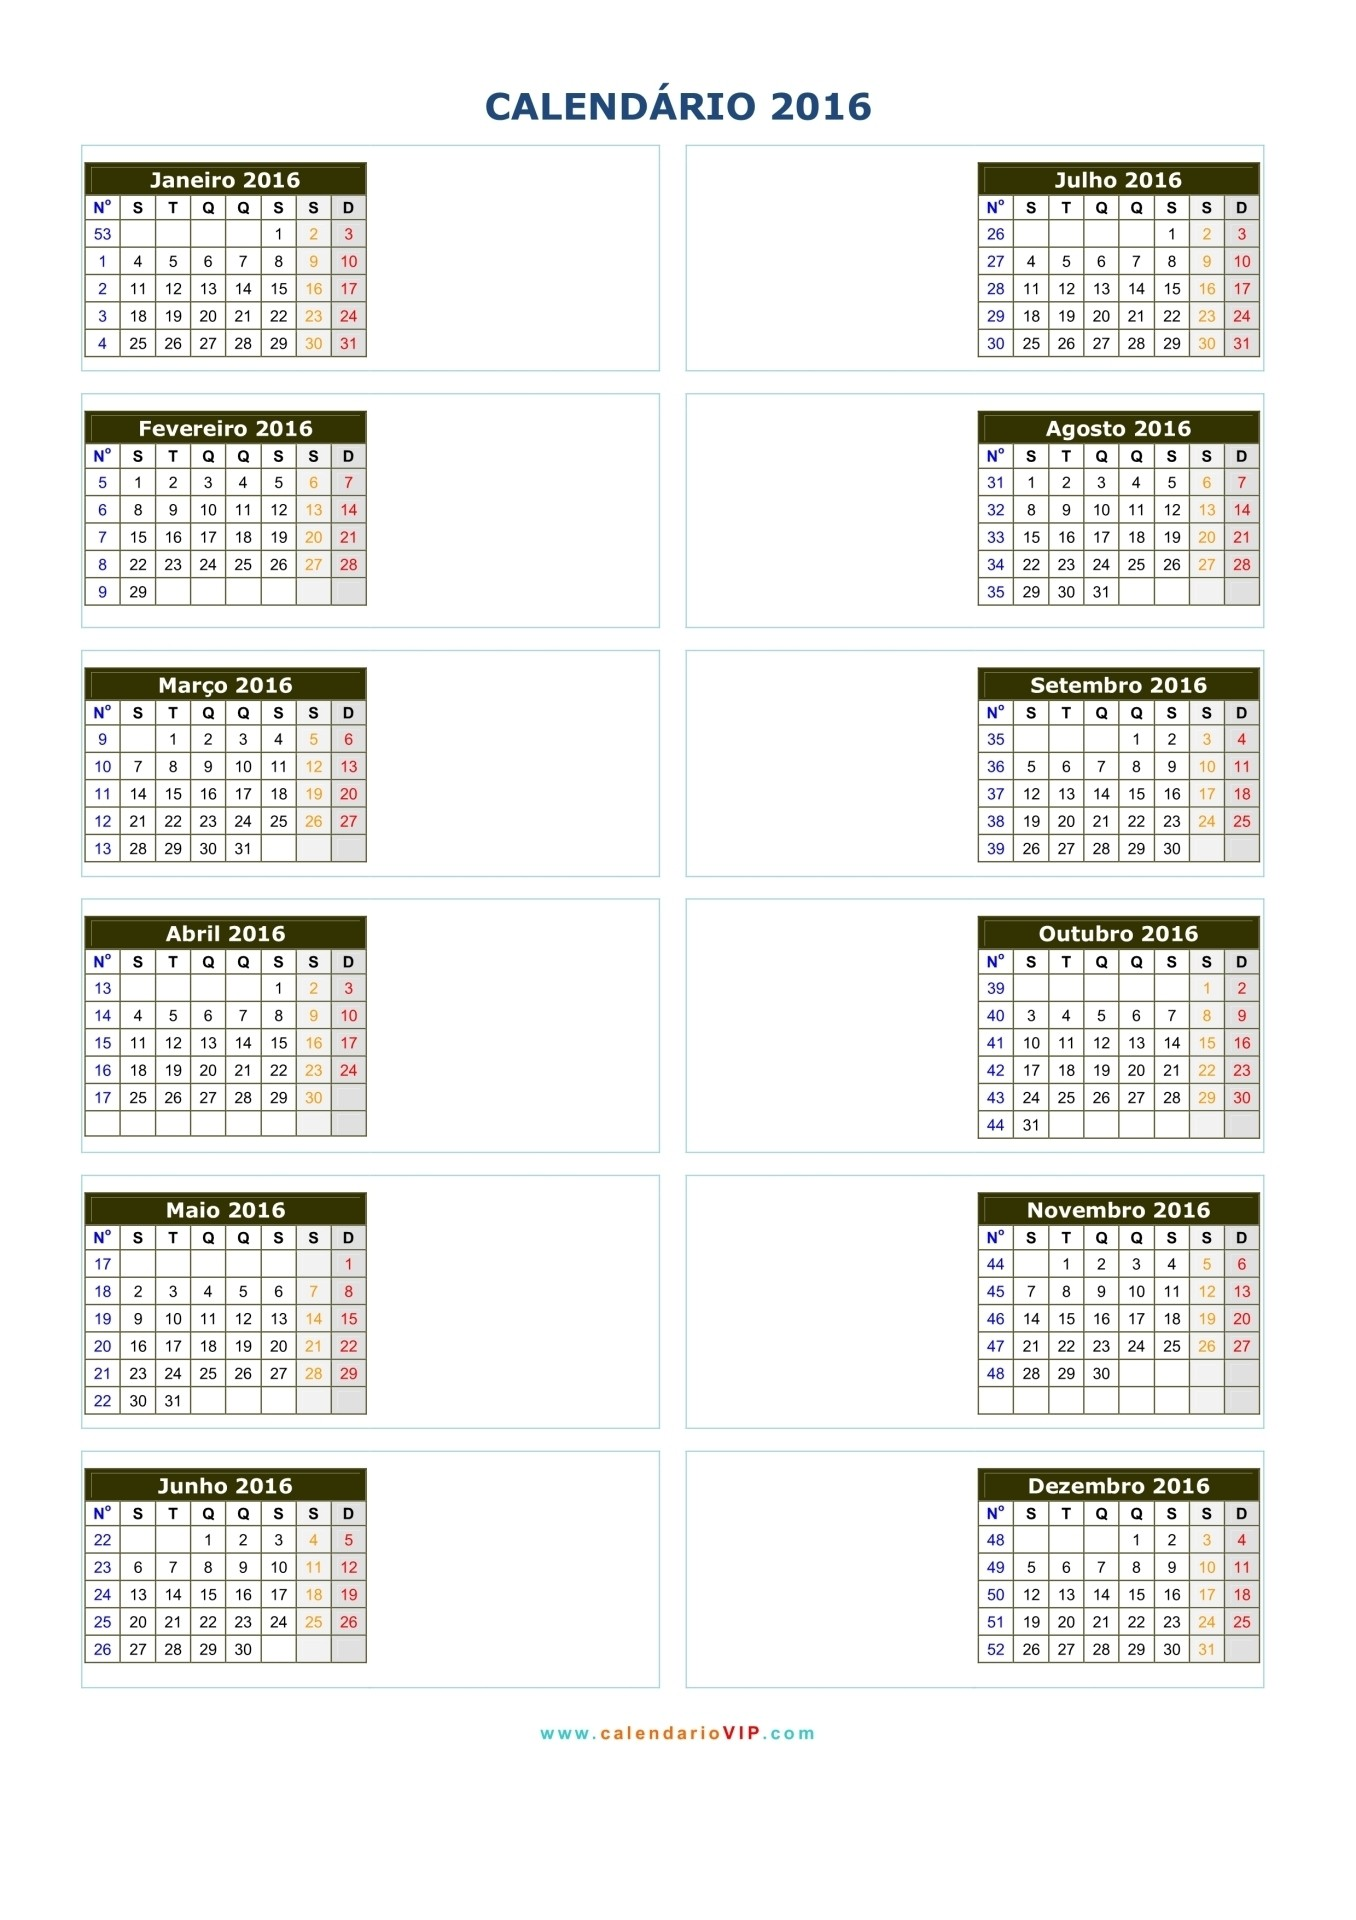 Novo Calendário Do Pis 2019 Más Reciente Calendario Novembro 2018 Imprimir T Of Novo Calendário Do Pis 2019 Más Reciente Googlier Search Date 2018 11 30